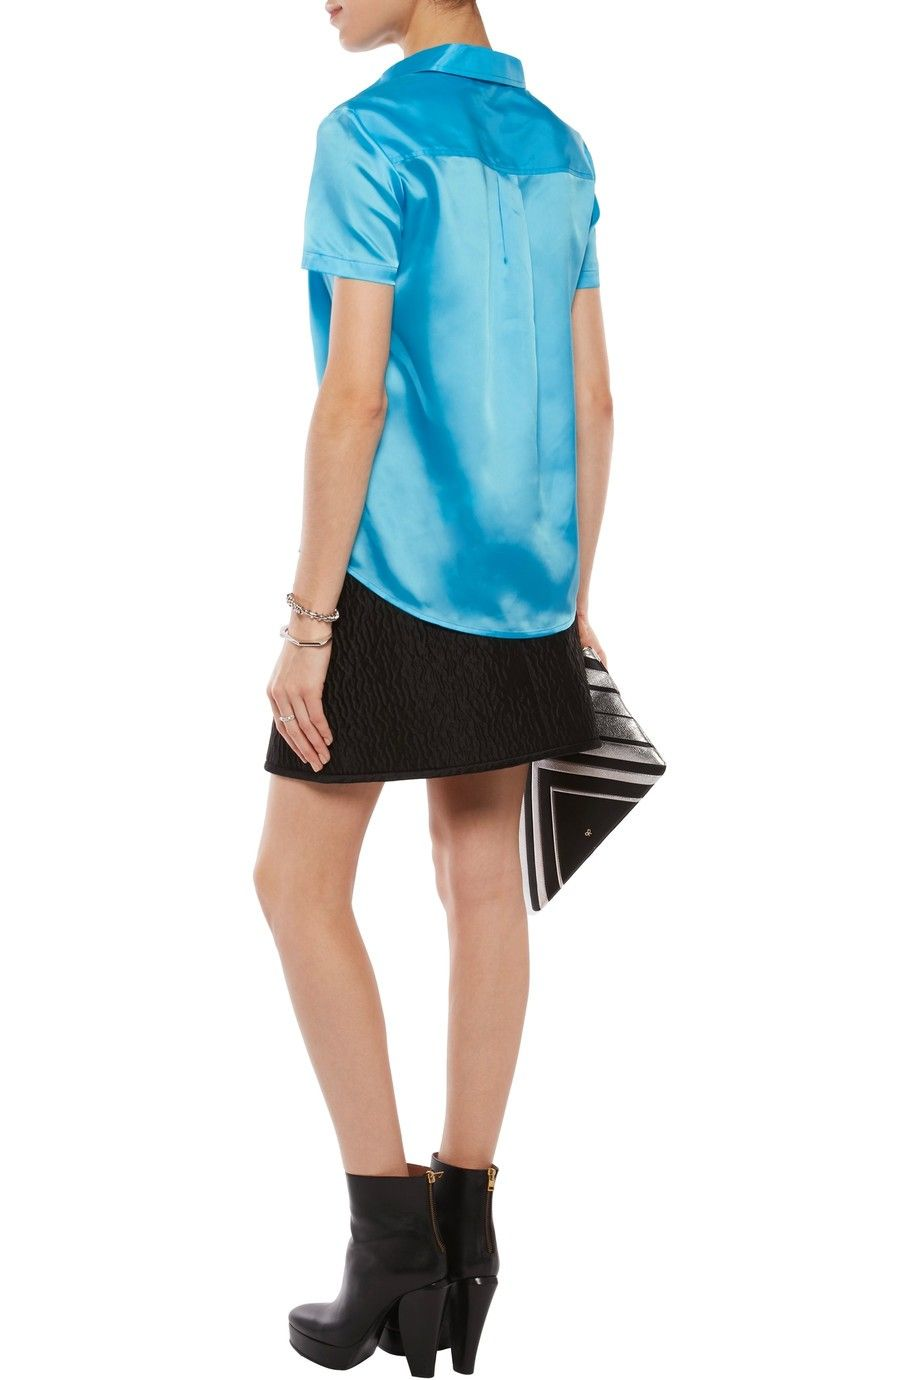 Satin blouse Marc by Marc Jacobs buy Satin blouse Marc by Marc Jacobs internet shop